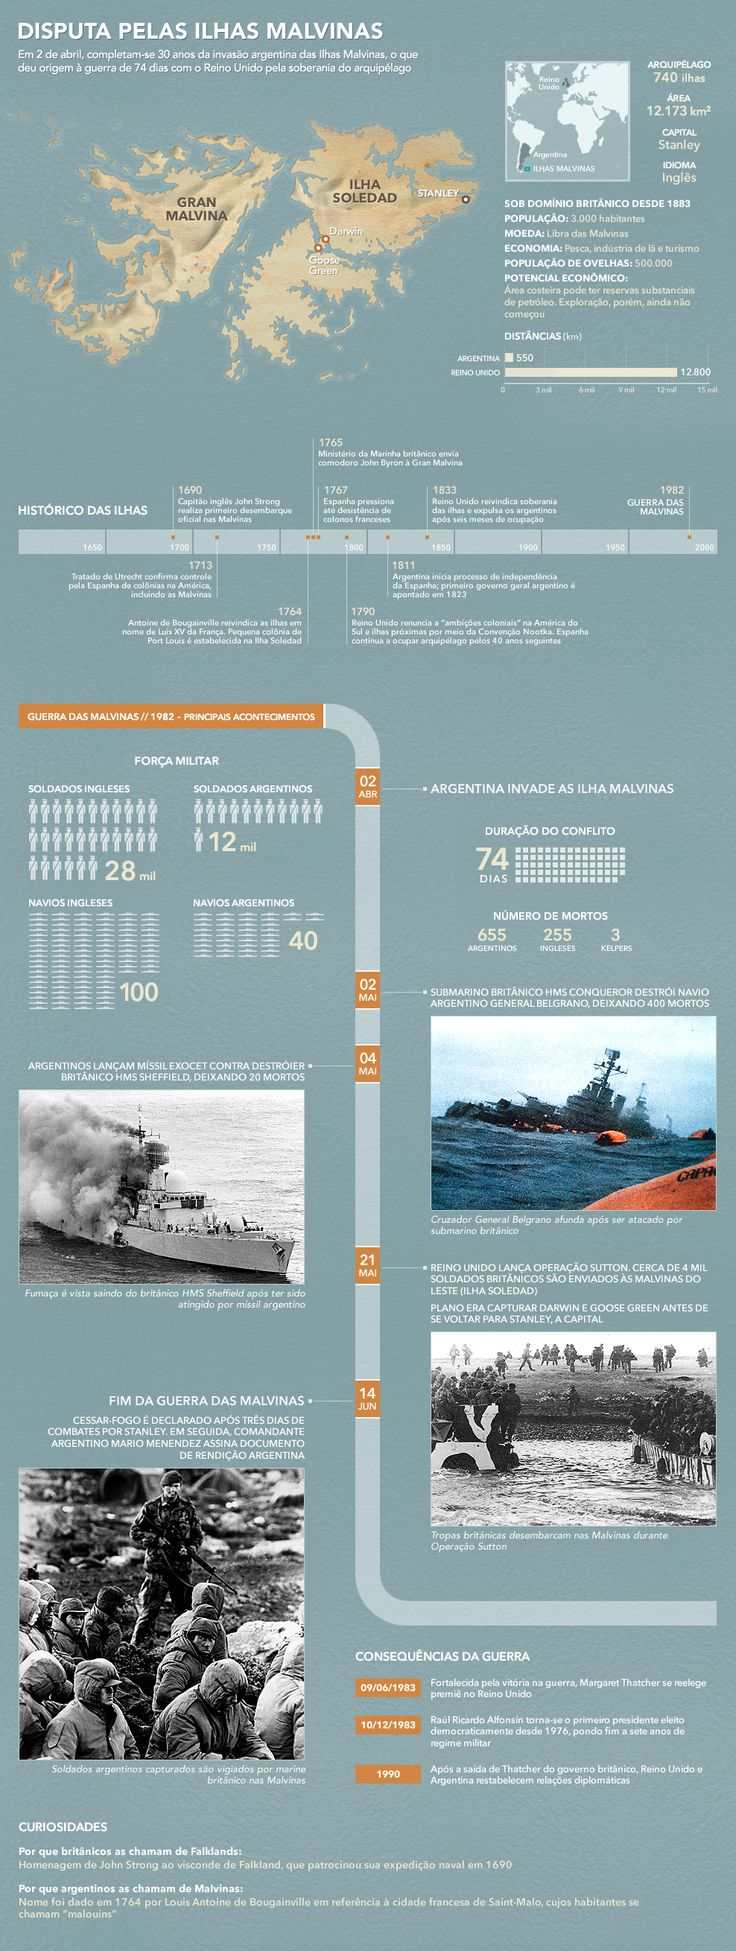 Facts about the Falklands War, also known as the Falklands Conflict or Falklands Crisis, was a 1982 war between Argentina and the United Kingdom.